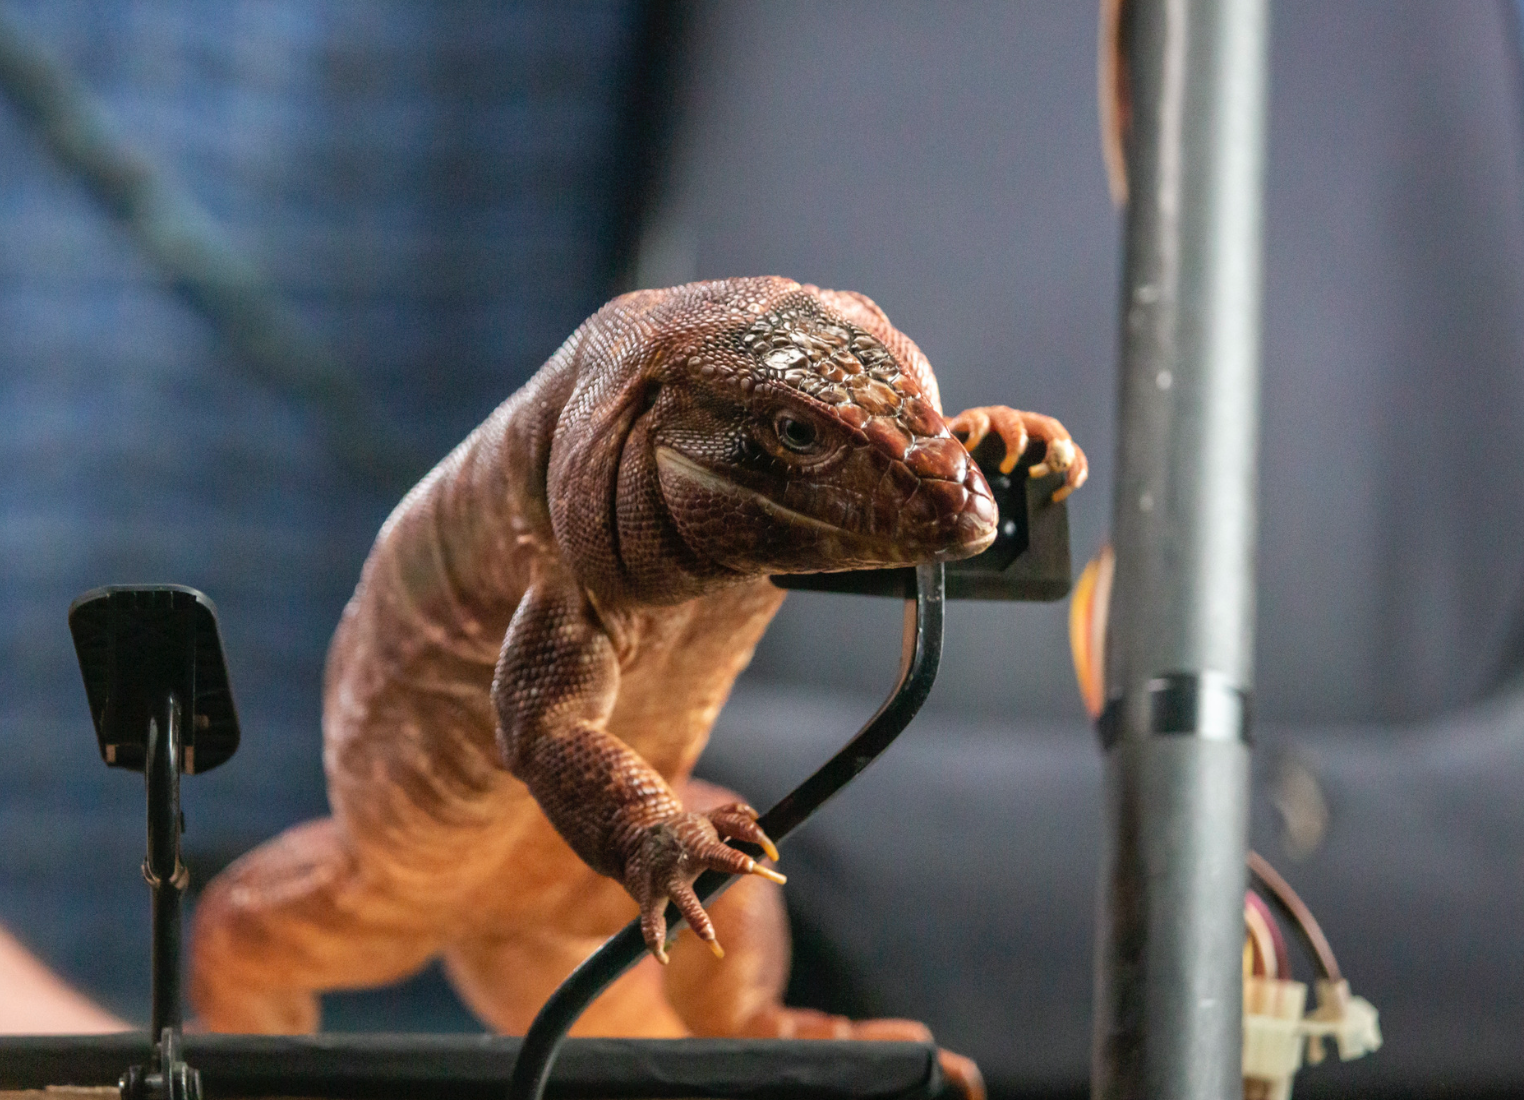 Zeke the Tegu Lizard (voiced by Paul Dobson) showing off his tech skills image on Candypo.com